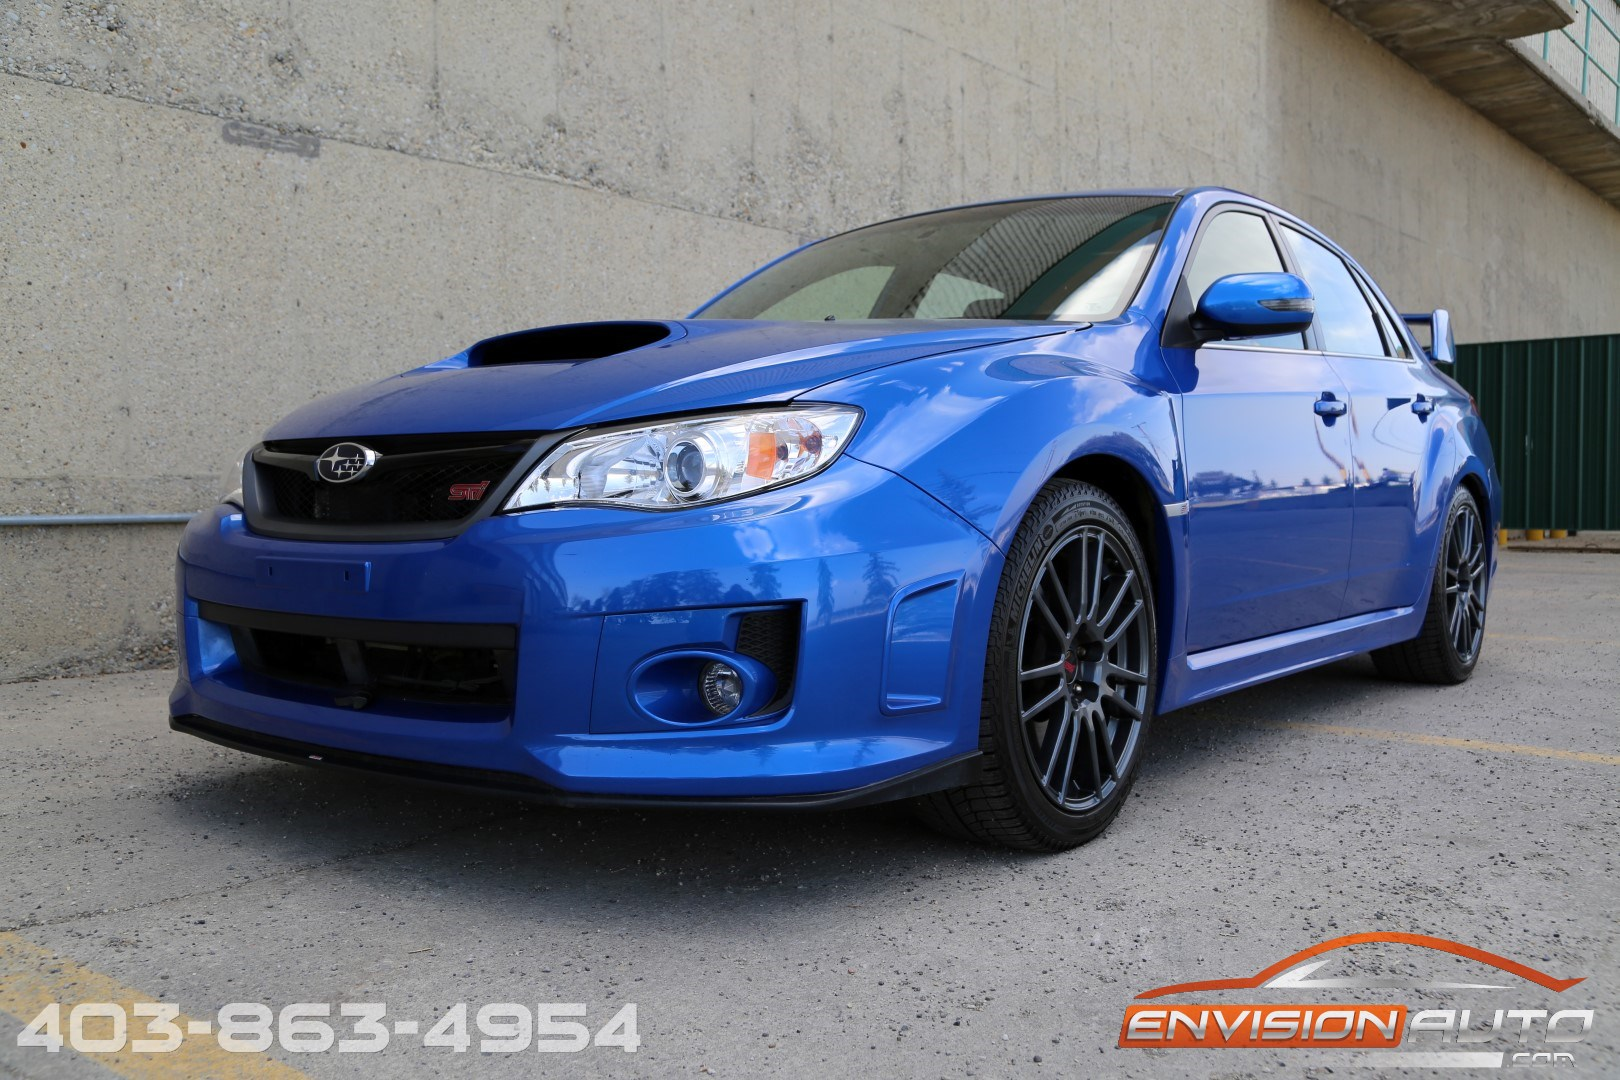 2014 subaru impreza wrx sti tsurugi edition envision auto. Black Bedroom Furniture Sets. Home Design Ideas